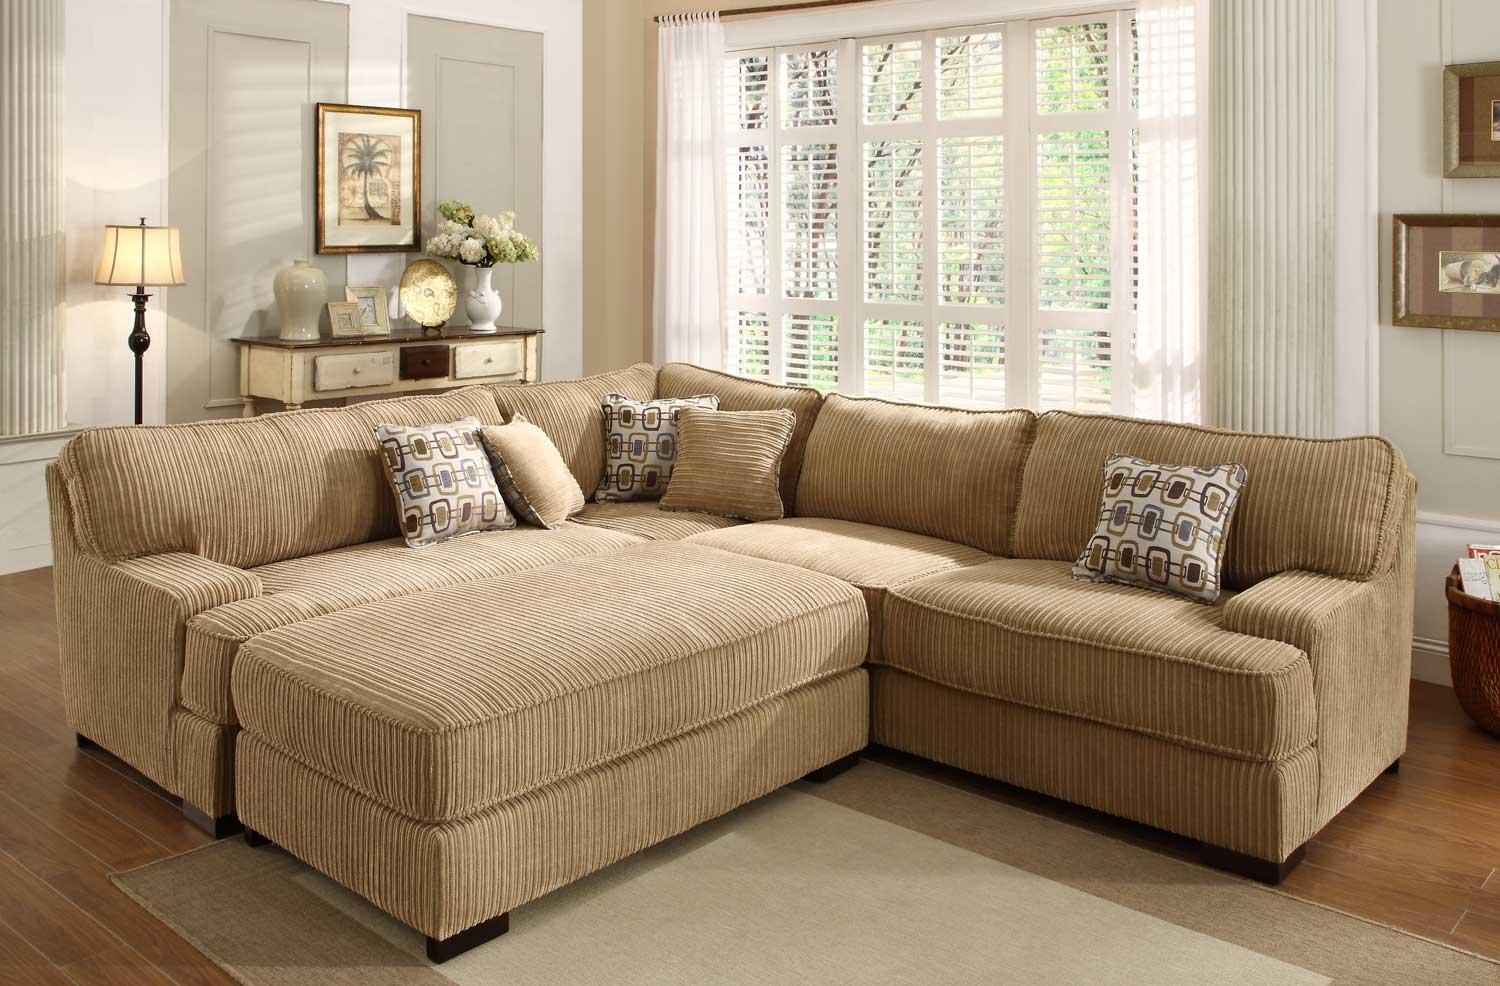 Sofas Center : Oversized Sectionals Sectional Sofas For Sale Regarding Sectional With Large Ottoman (View 8 of 20)